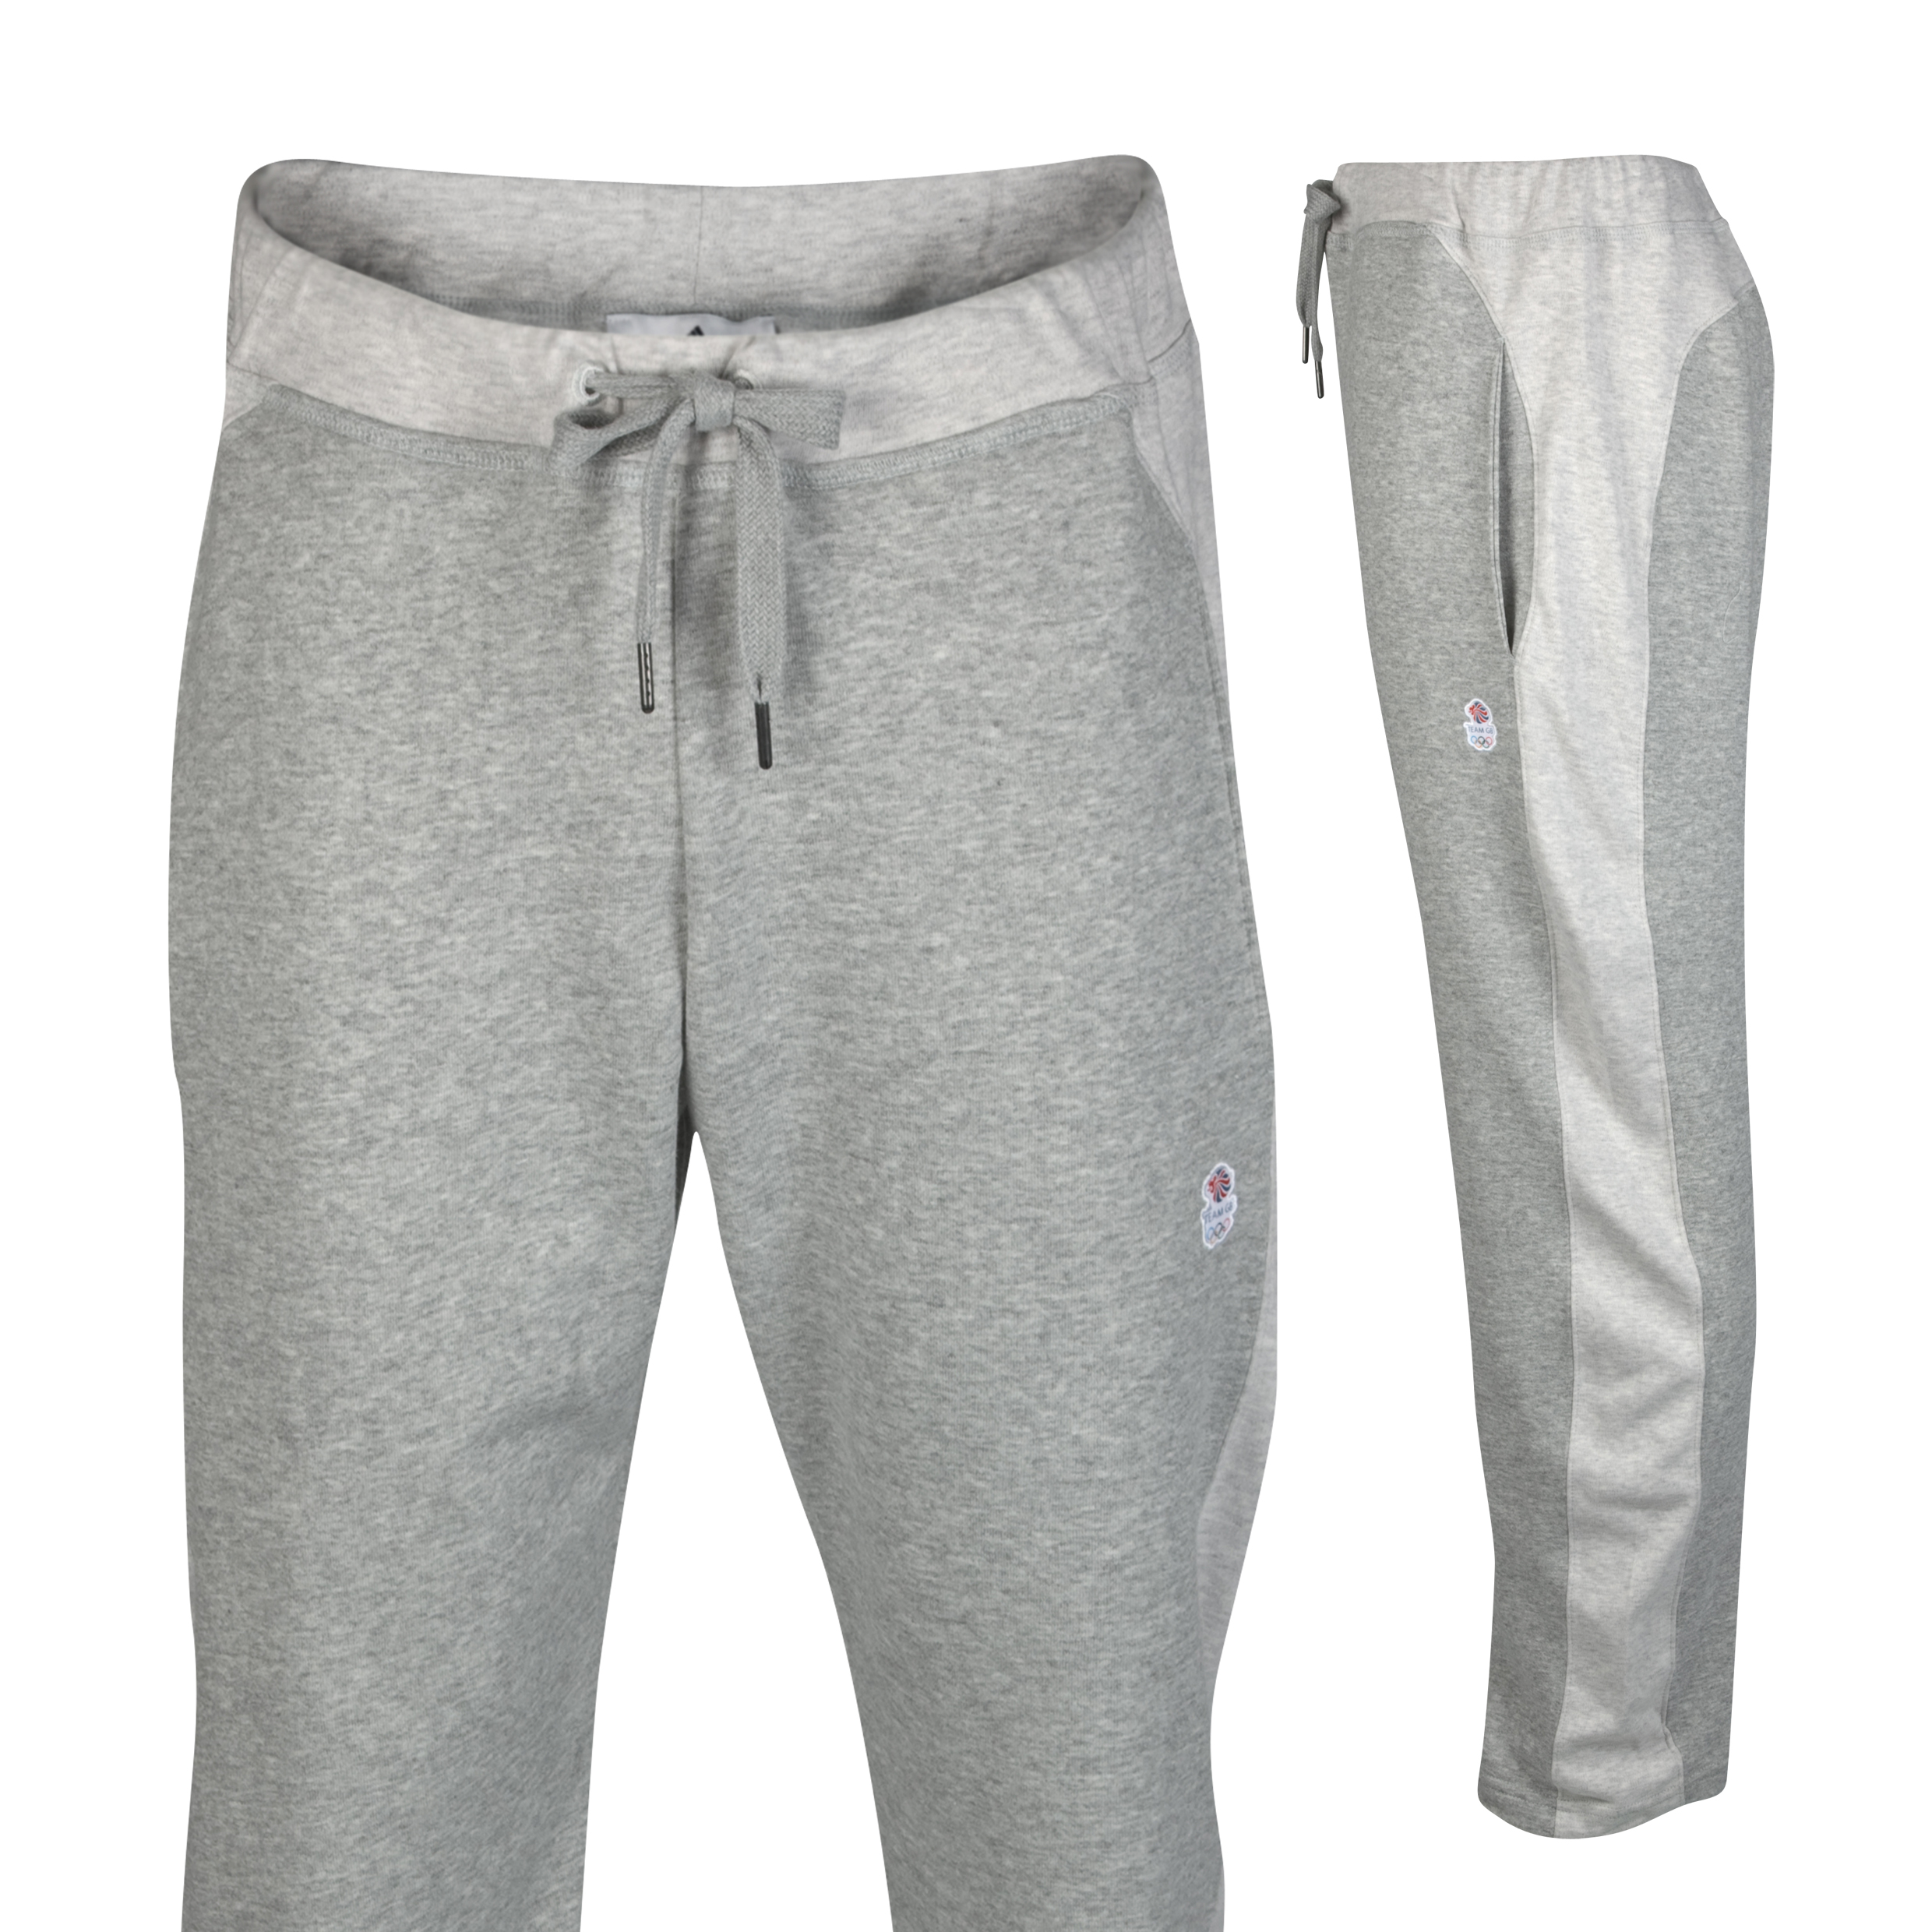 adidas Team GB Emblem Pant - Medium Grey Heather